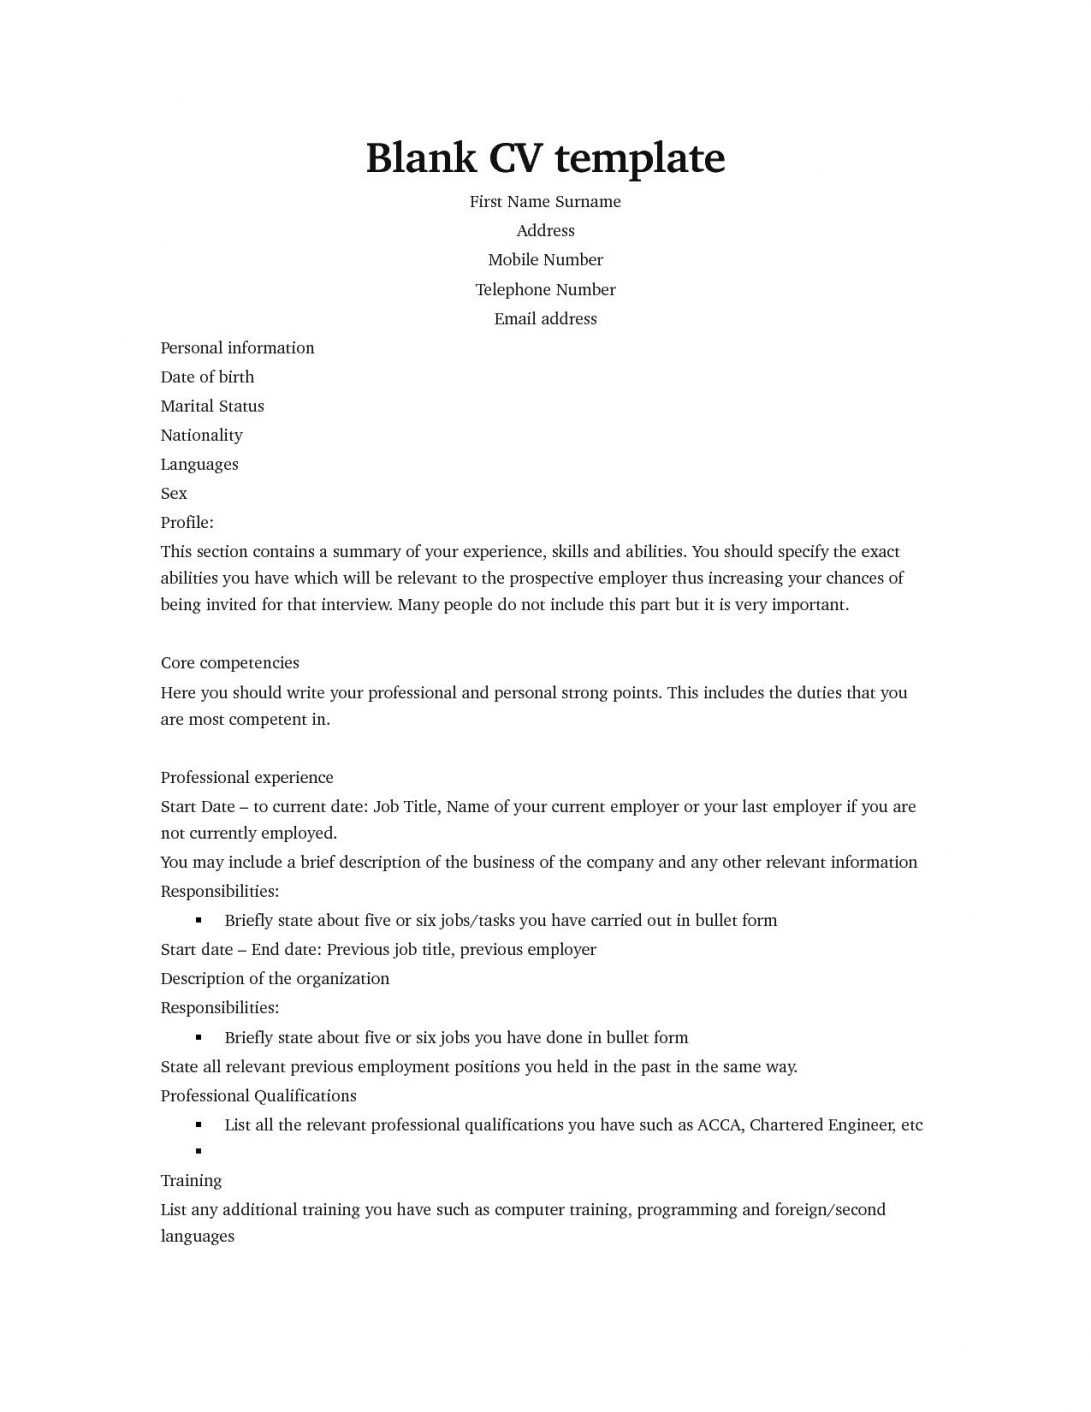 Blank Cv Template Pinfree Resume Templates Sample intended for Free Blank Cv Template Download